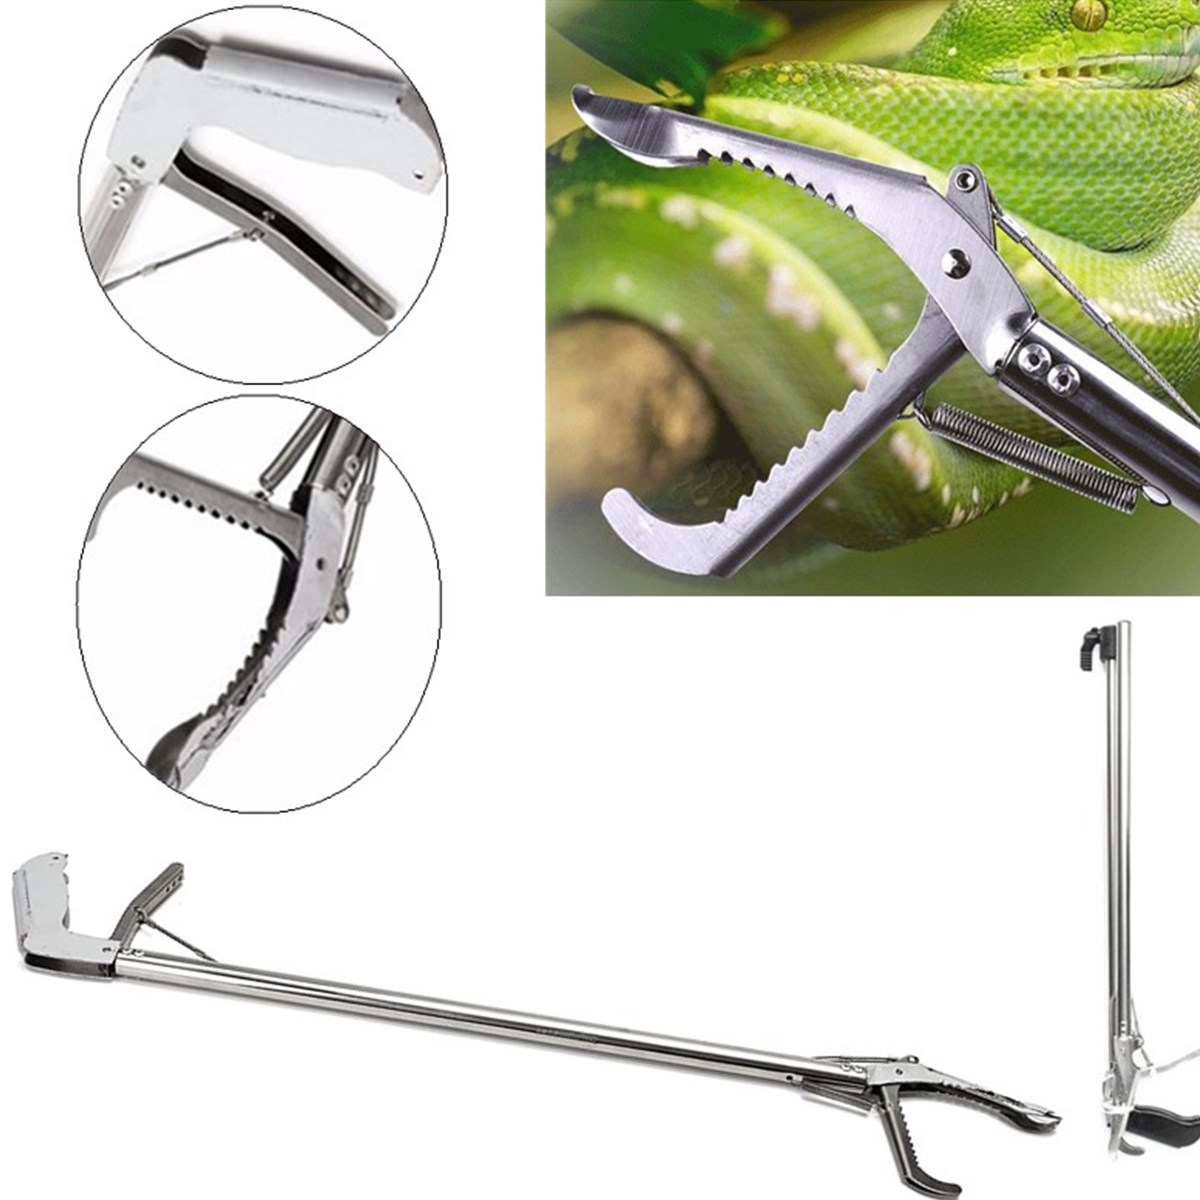 75CM Heavy Duty Lizards Foldable Reptile  Tongs Stick Grabber Catcher Wide Jaw Tool Heavy  Duty Pest Control Products